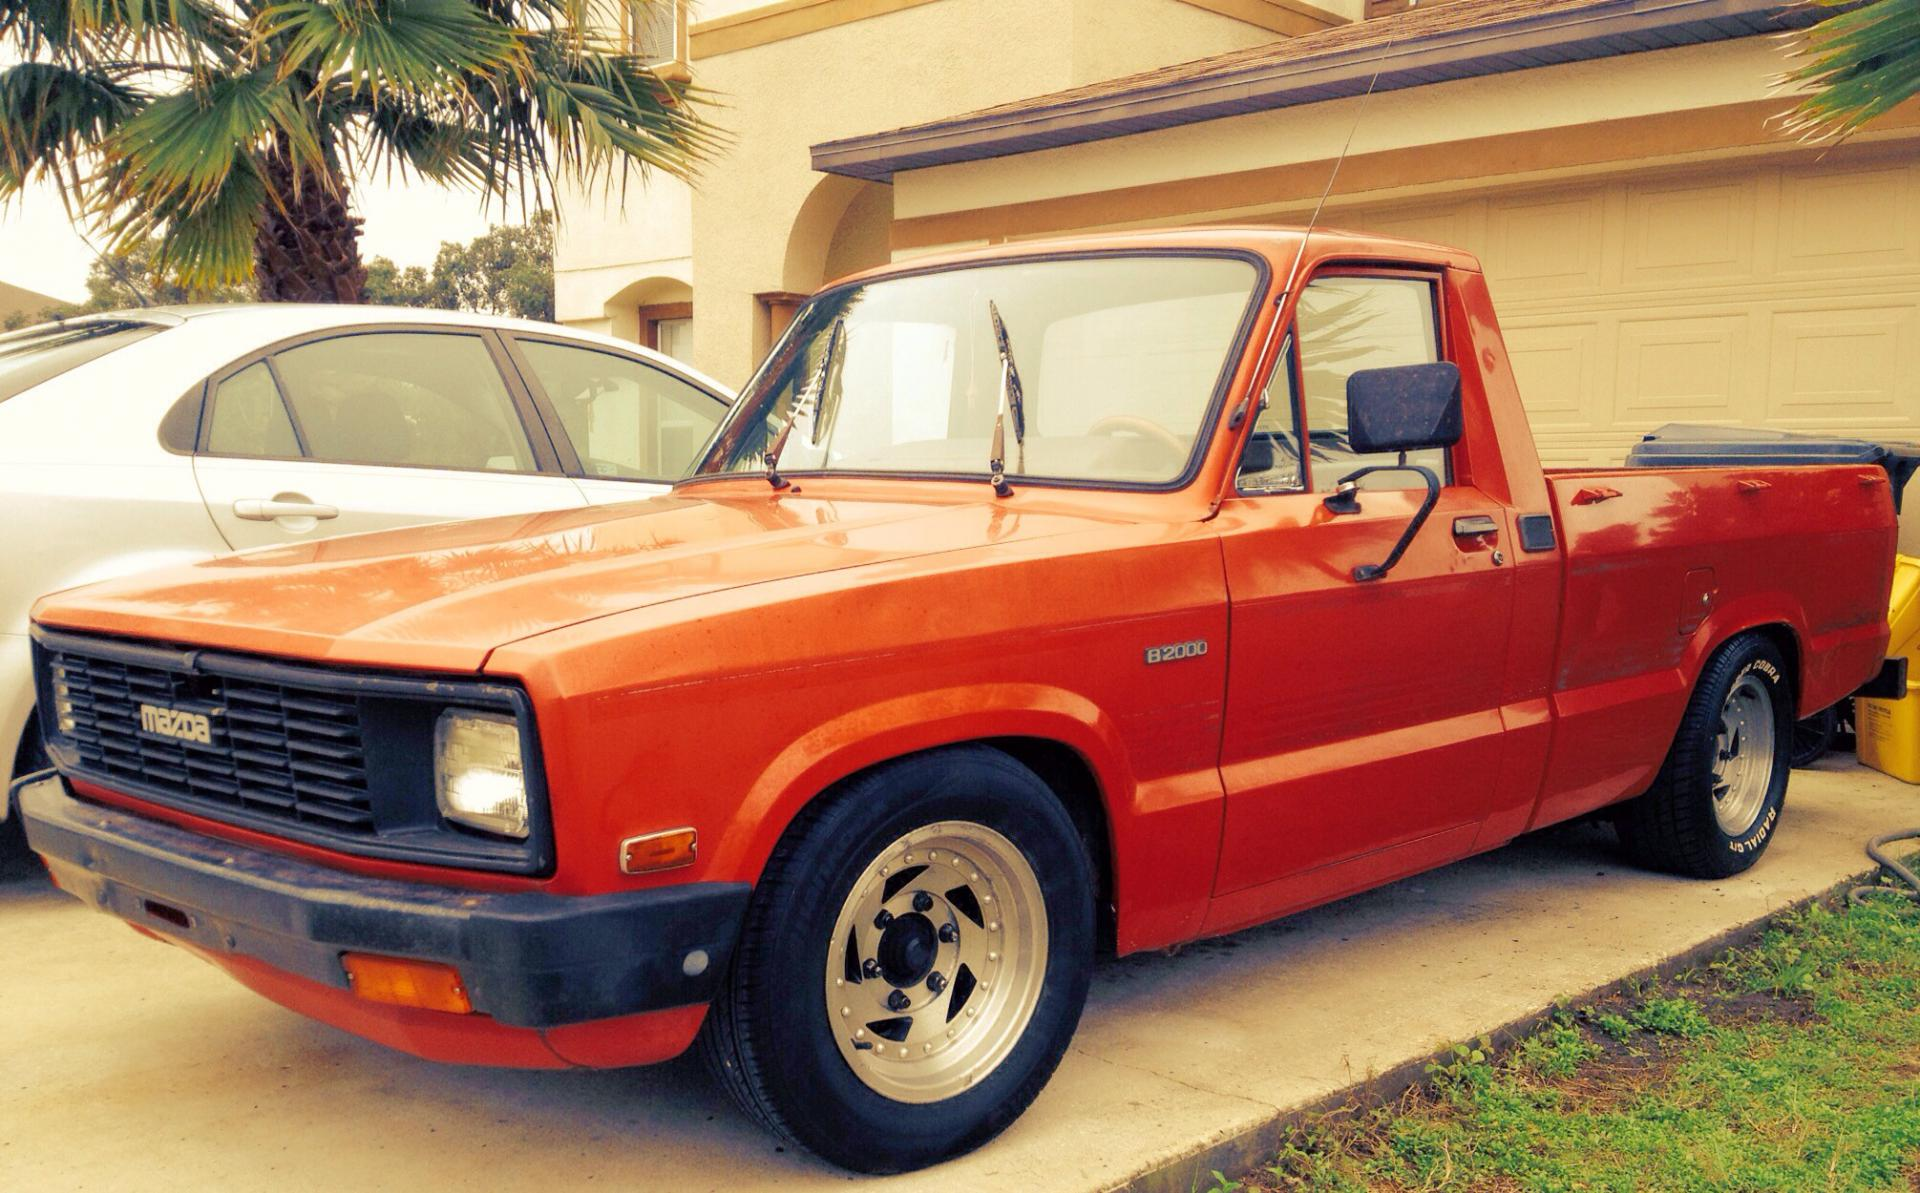 1984 Mazda B2000 Mazda Forum. Full resolution‎  file, nominally Width 1920 Height 1193 pixels, file with #B1281A.